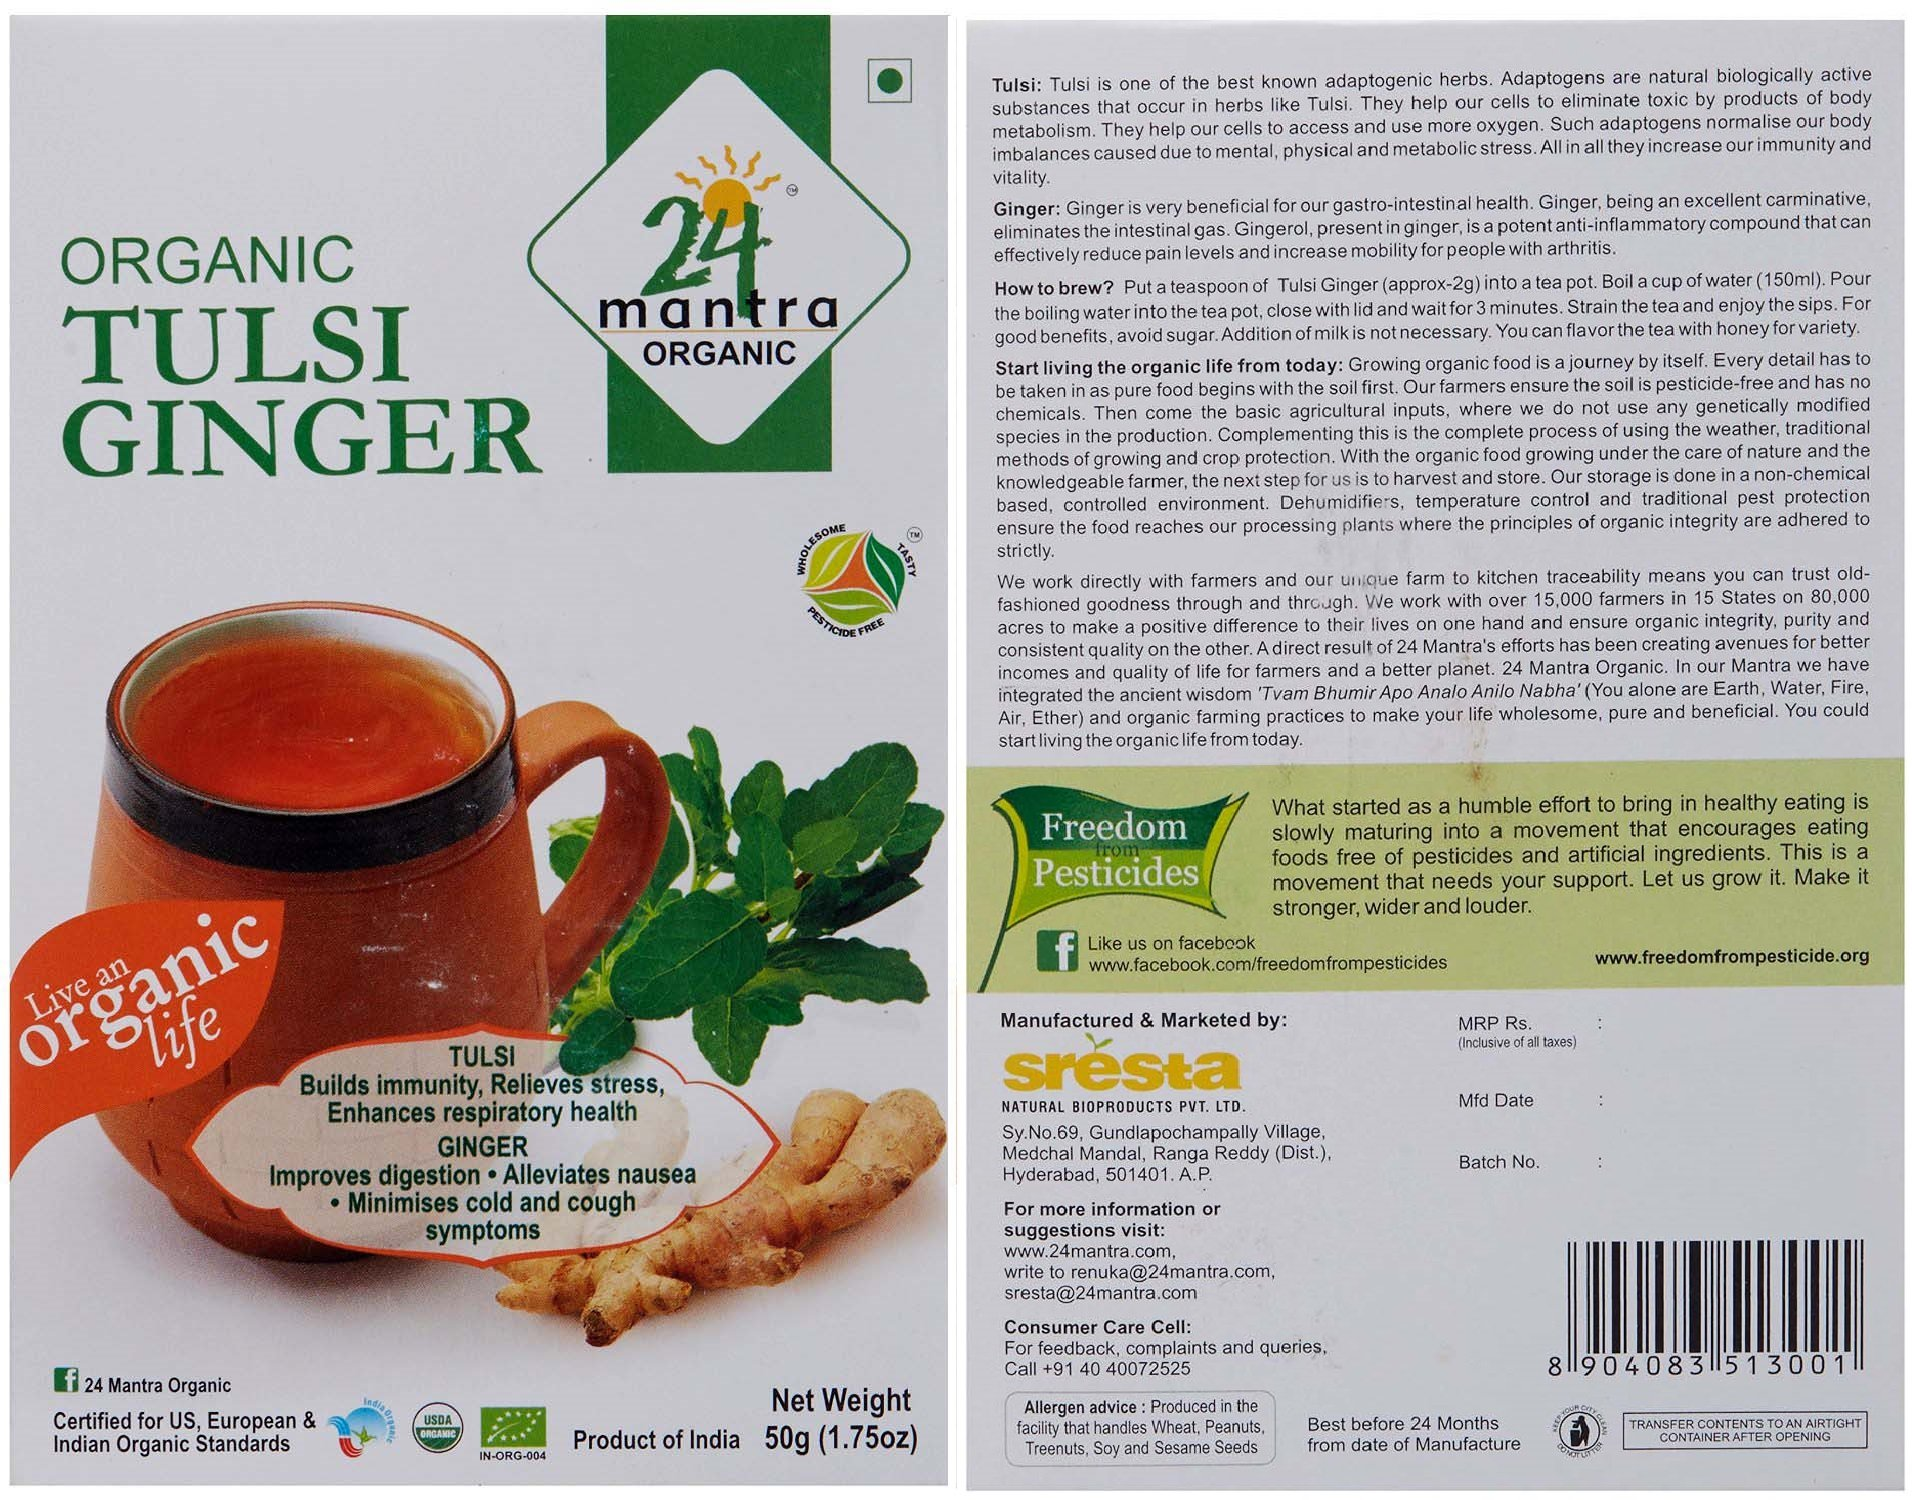 Organic Coriander Powder - Coriander Seeds Powder - ★ USDA Certified Organic - ★ European Union Certified Organic - ★ Pesticides Free - ★ Adulteration Free - ★ Sodium Free - Pack of 2 X 7 Ounces(14 Ounces) - 24 Mantra Organic by 24 MANTRA (Image #5)